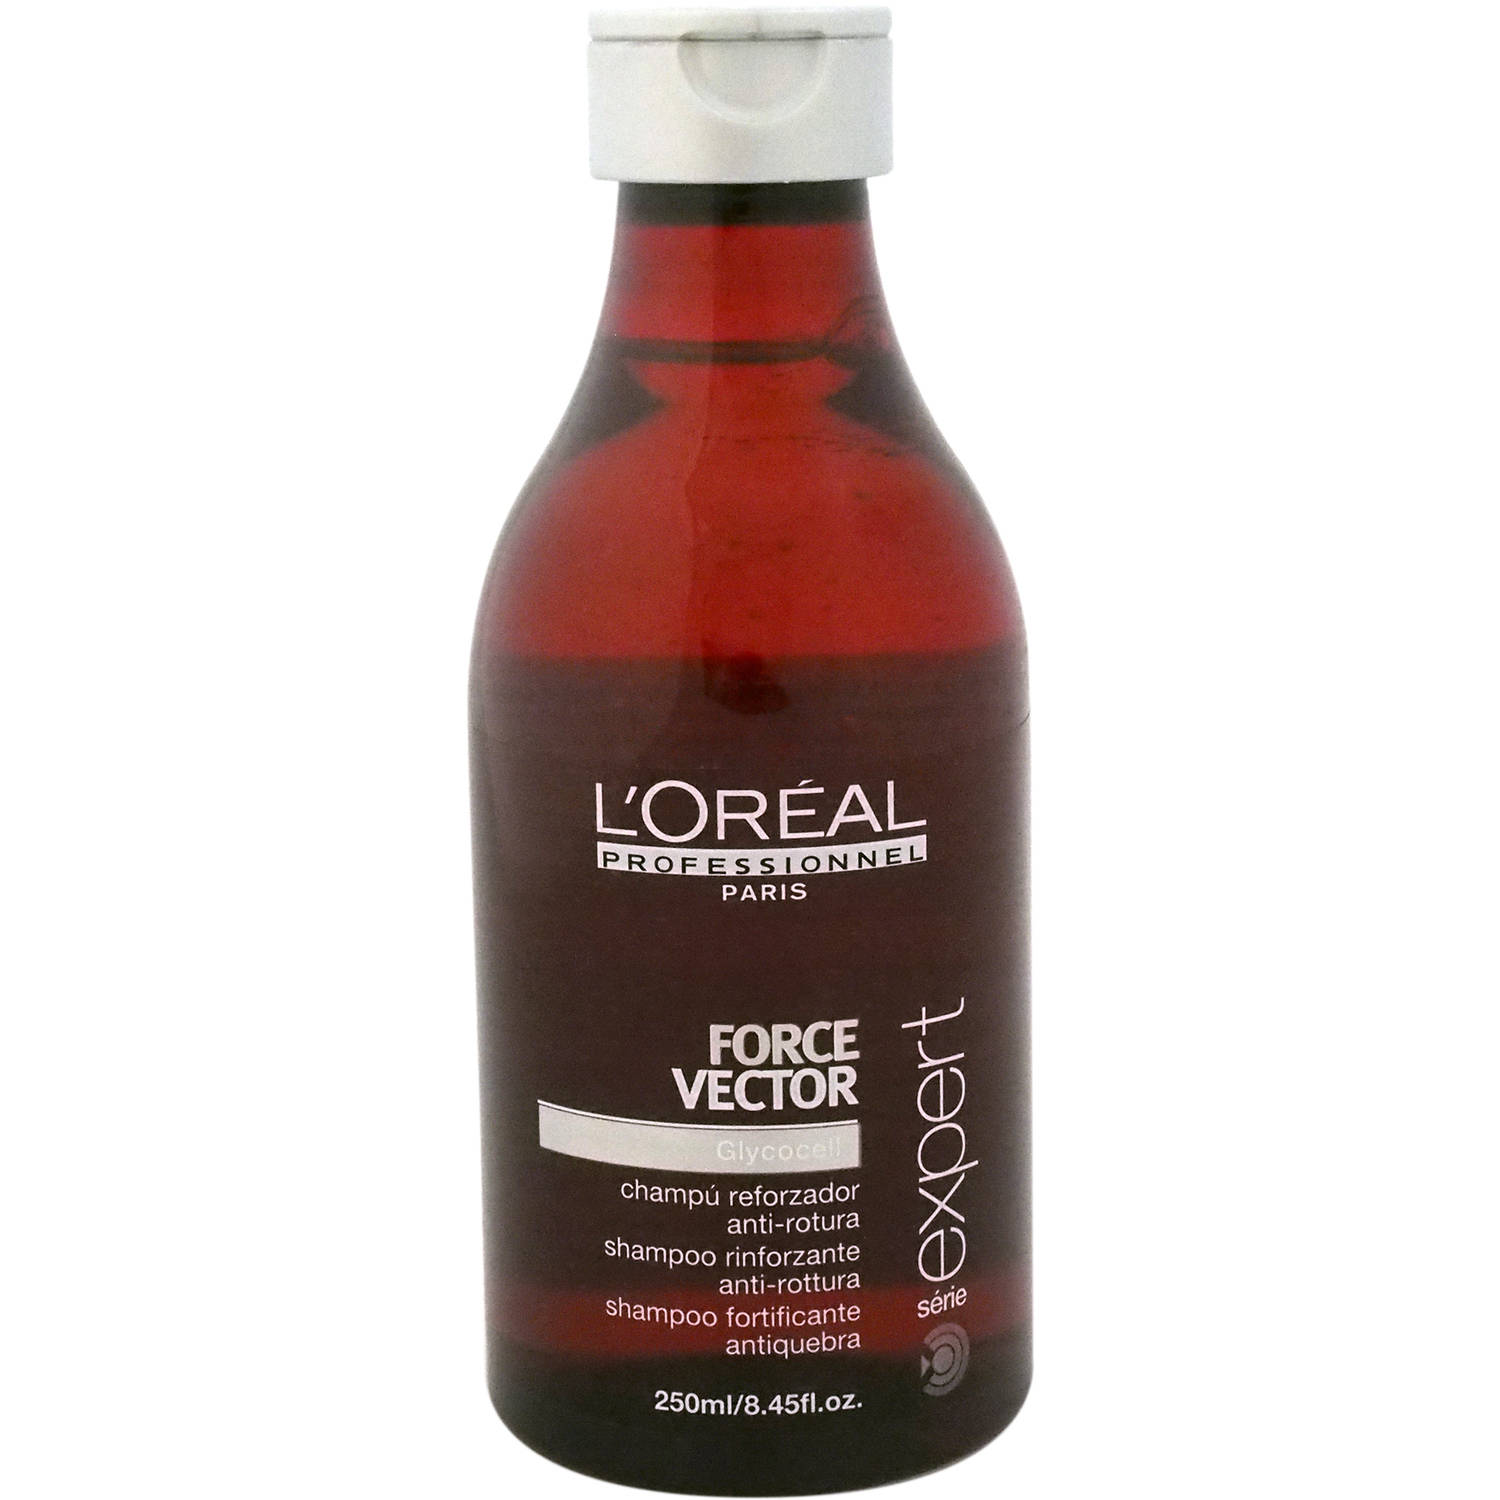 L'Oreal Professional Serie Expert Force Vector Glycocell Shampoo, 8.45 oz